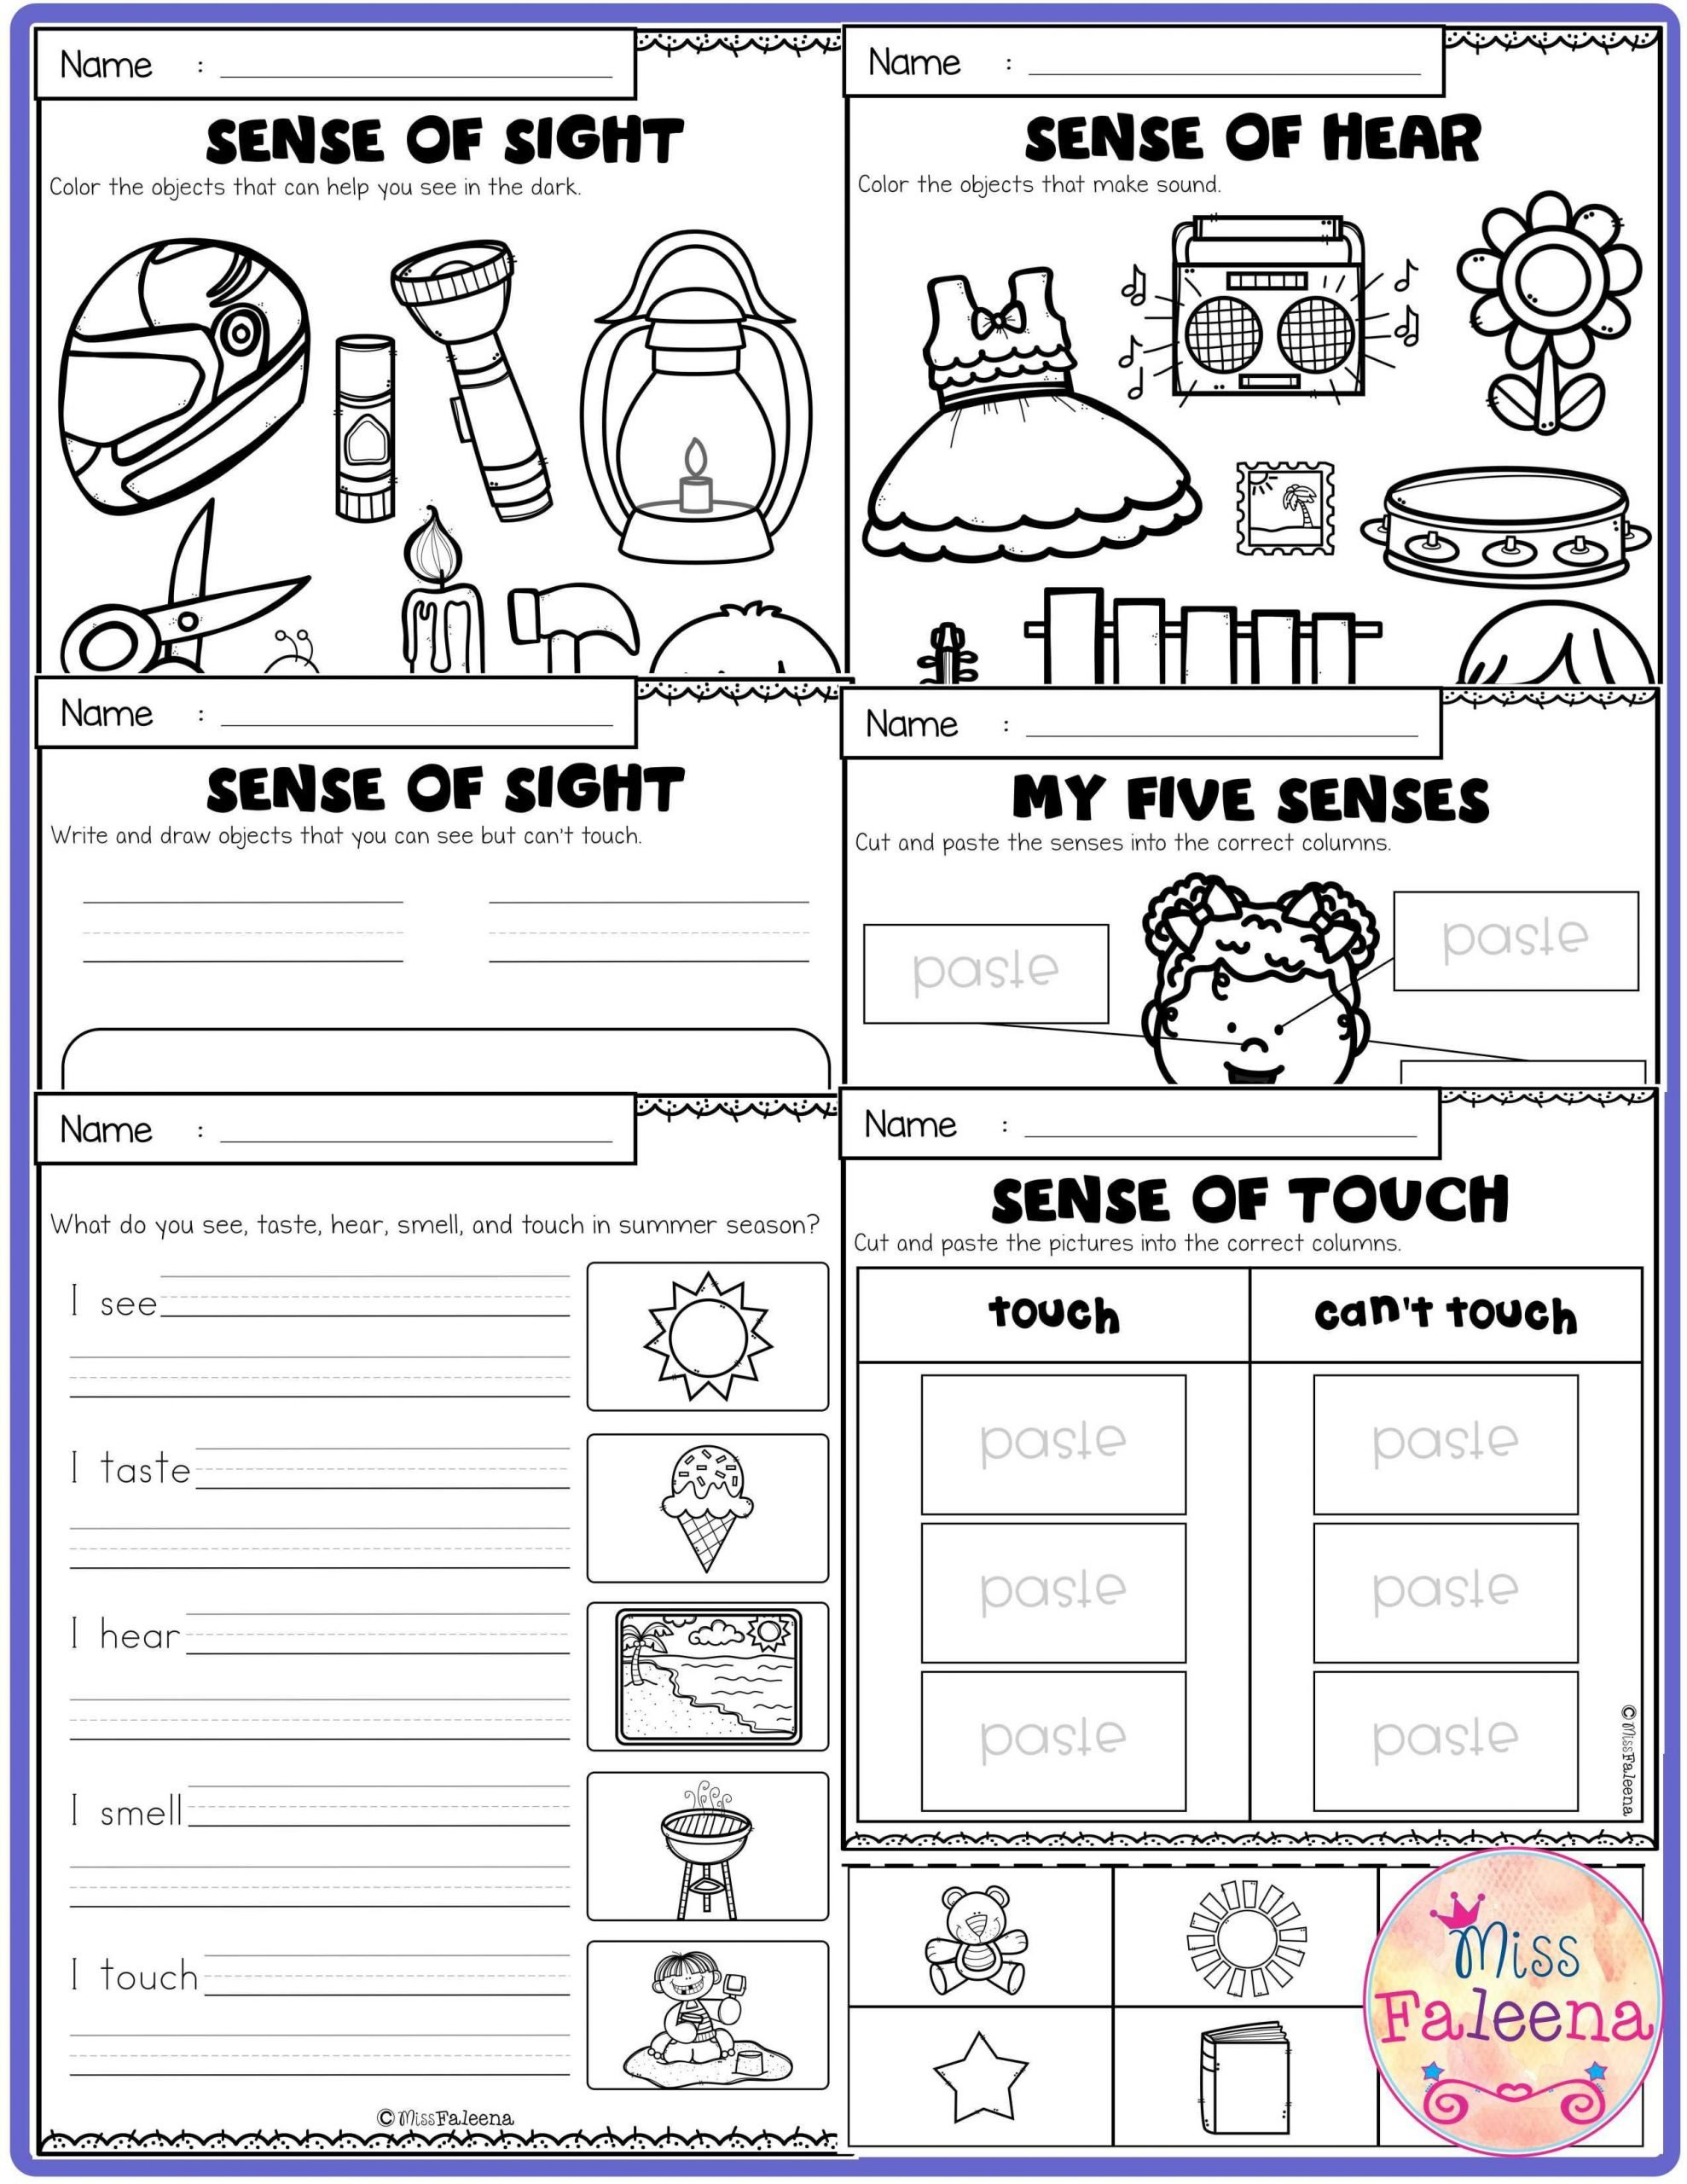 Sense Of Sight Worksheets Five Senses Activities Has 25 Pages Worksheets these